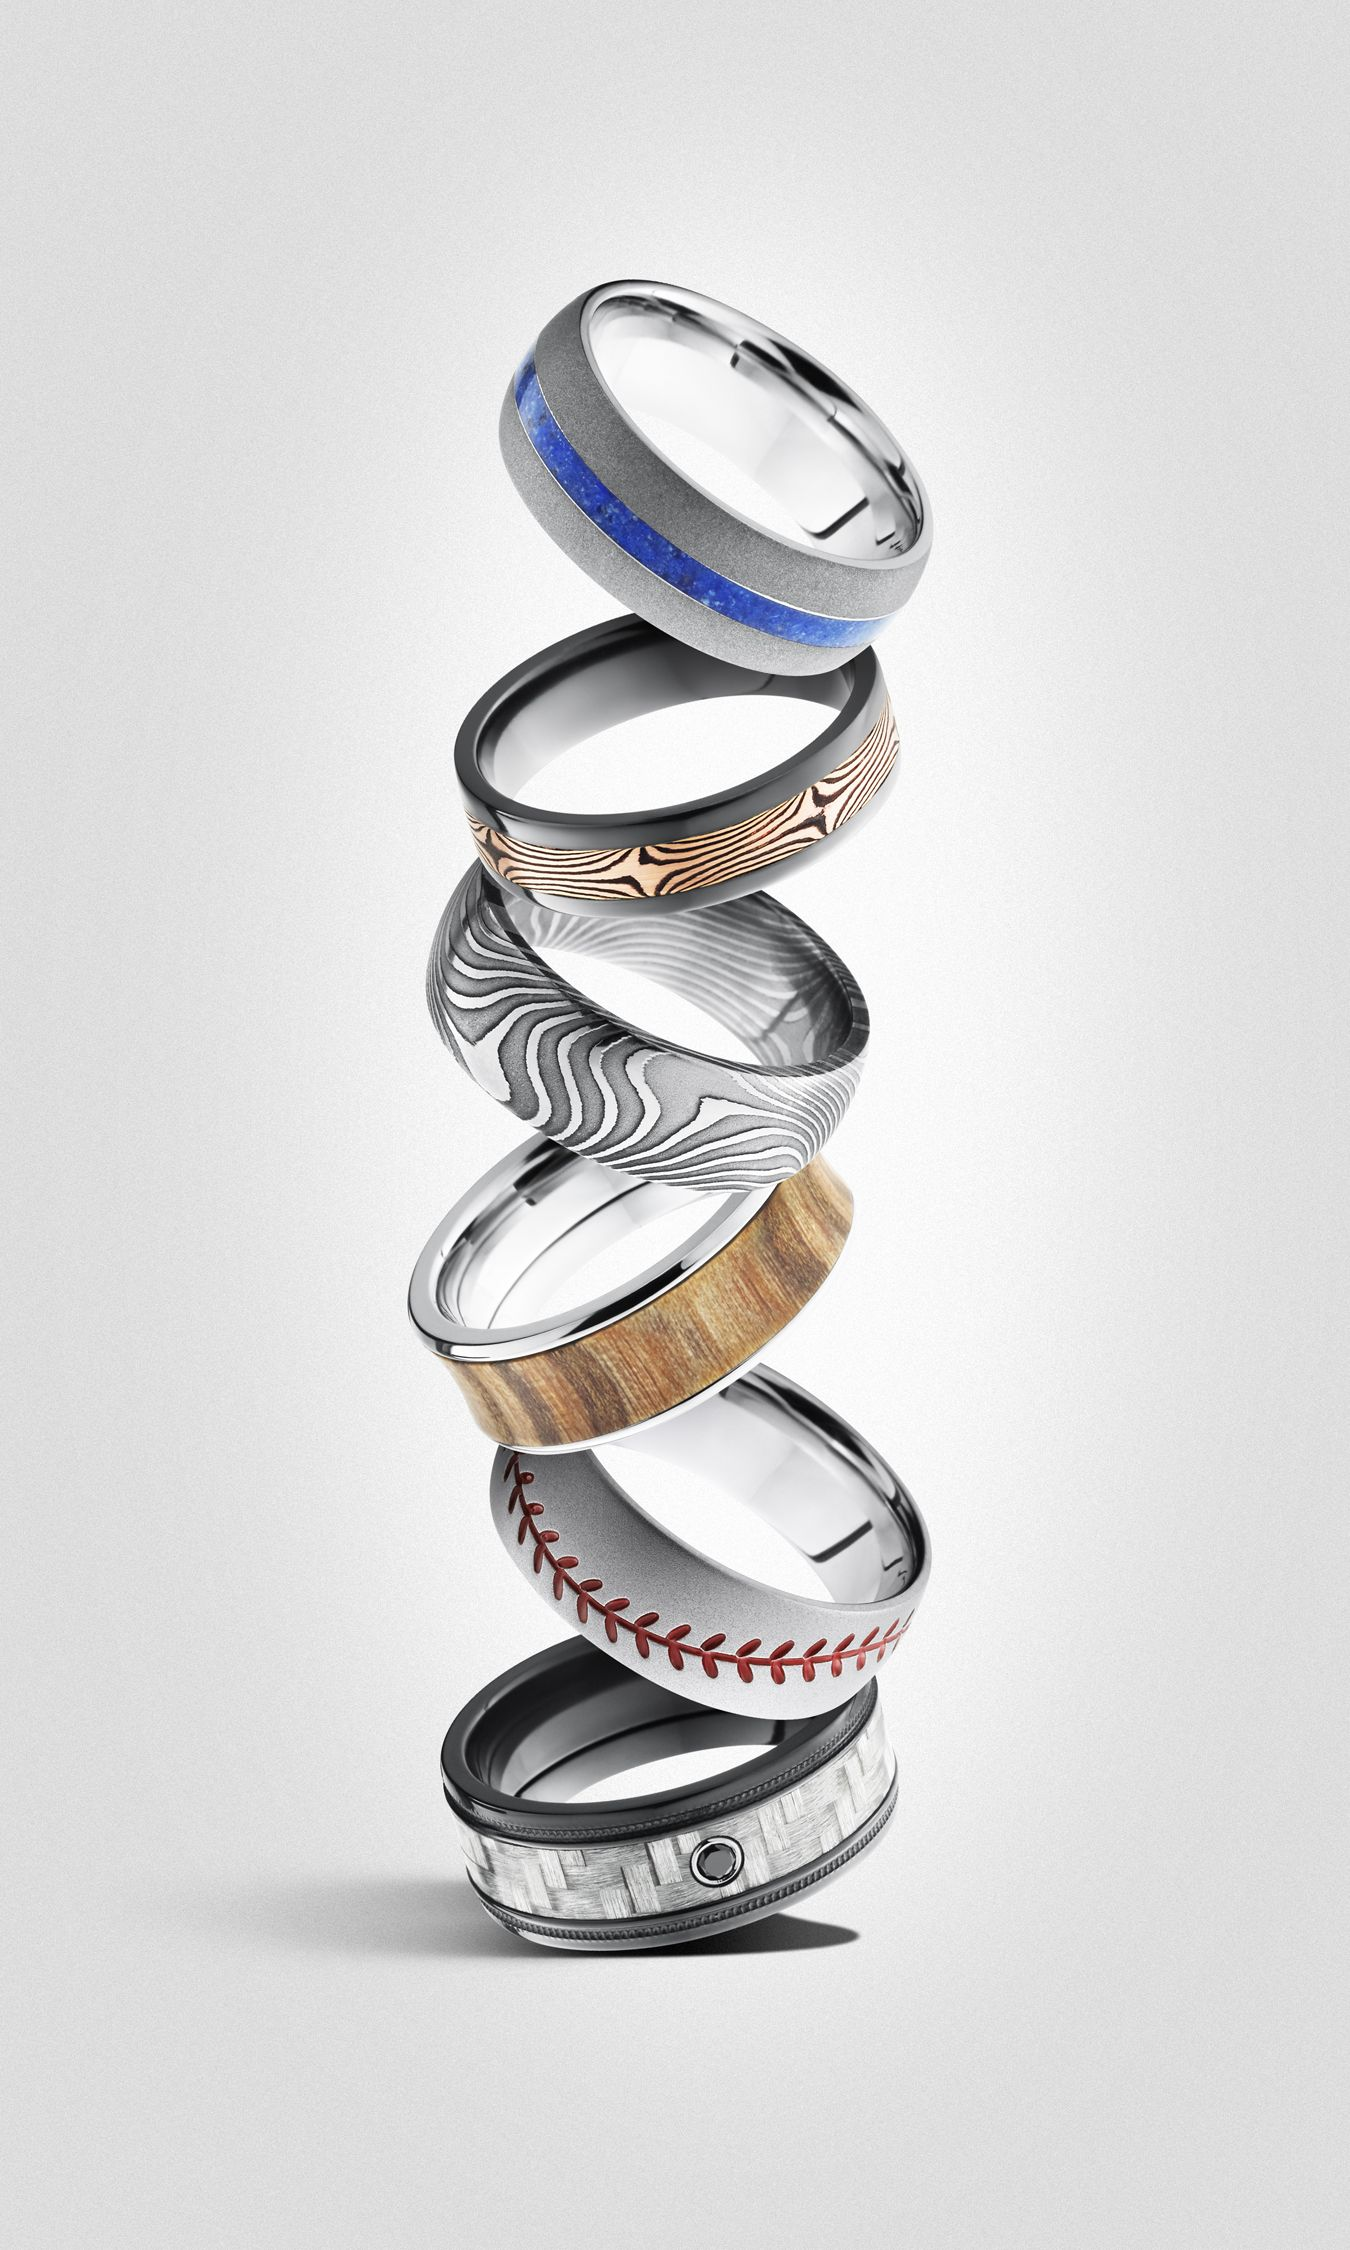 Wedding bands by Lashbrook! Available in alternative